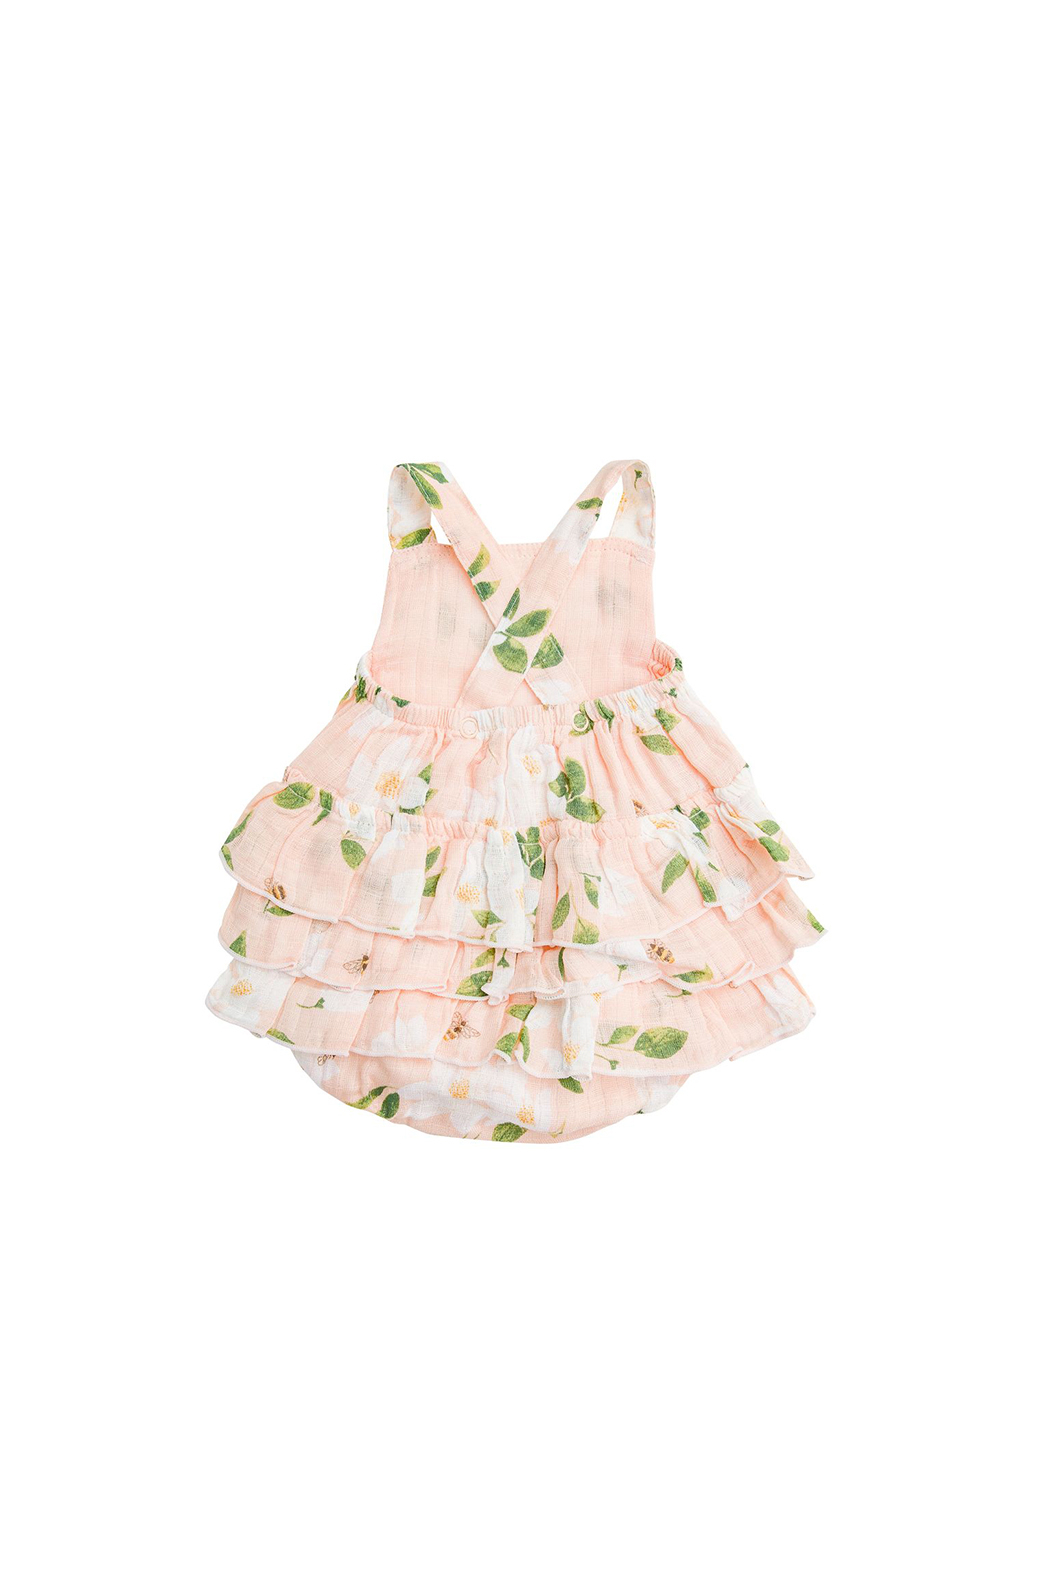 Angel Dear Magnolia Muslin Ruffle Sunsuit - Front Full Image